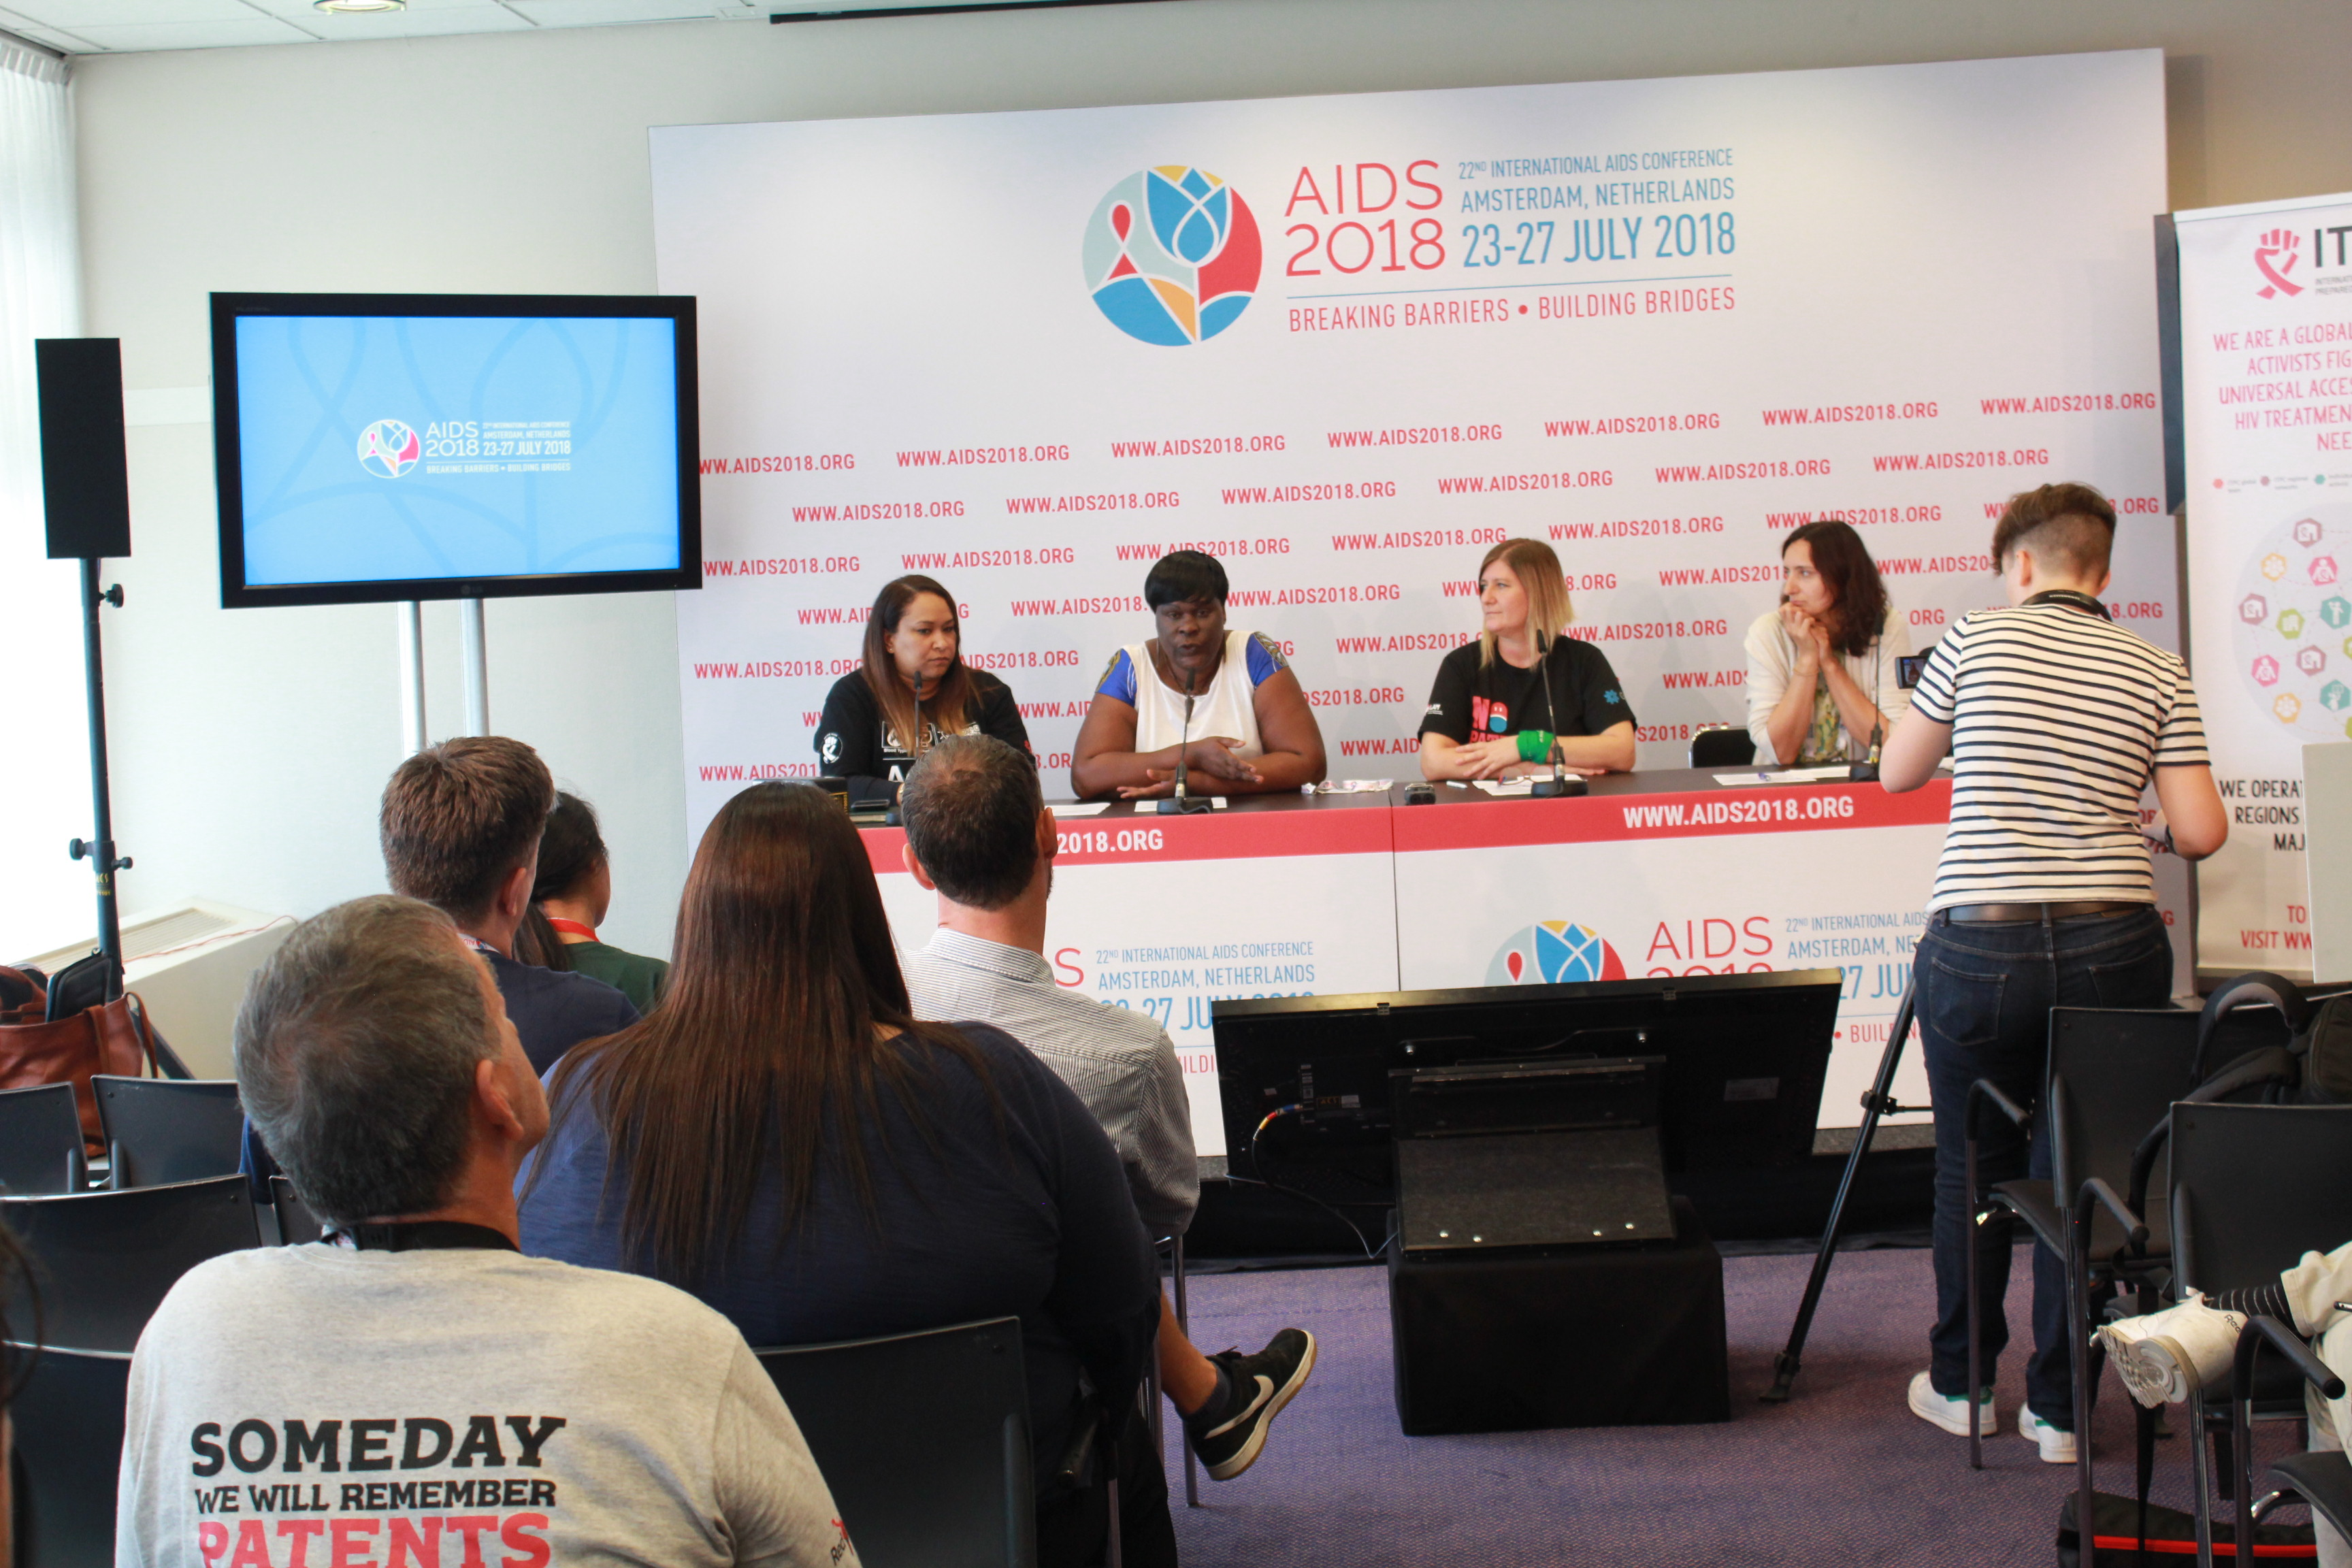 itpc press conference aids 2018